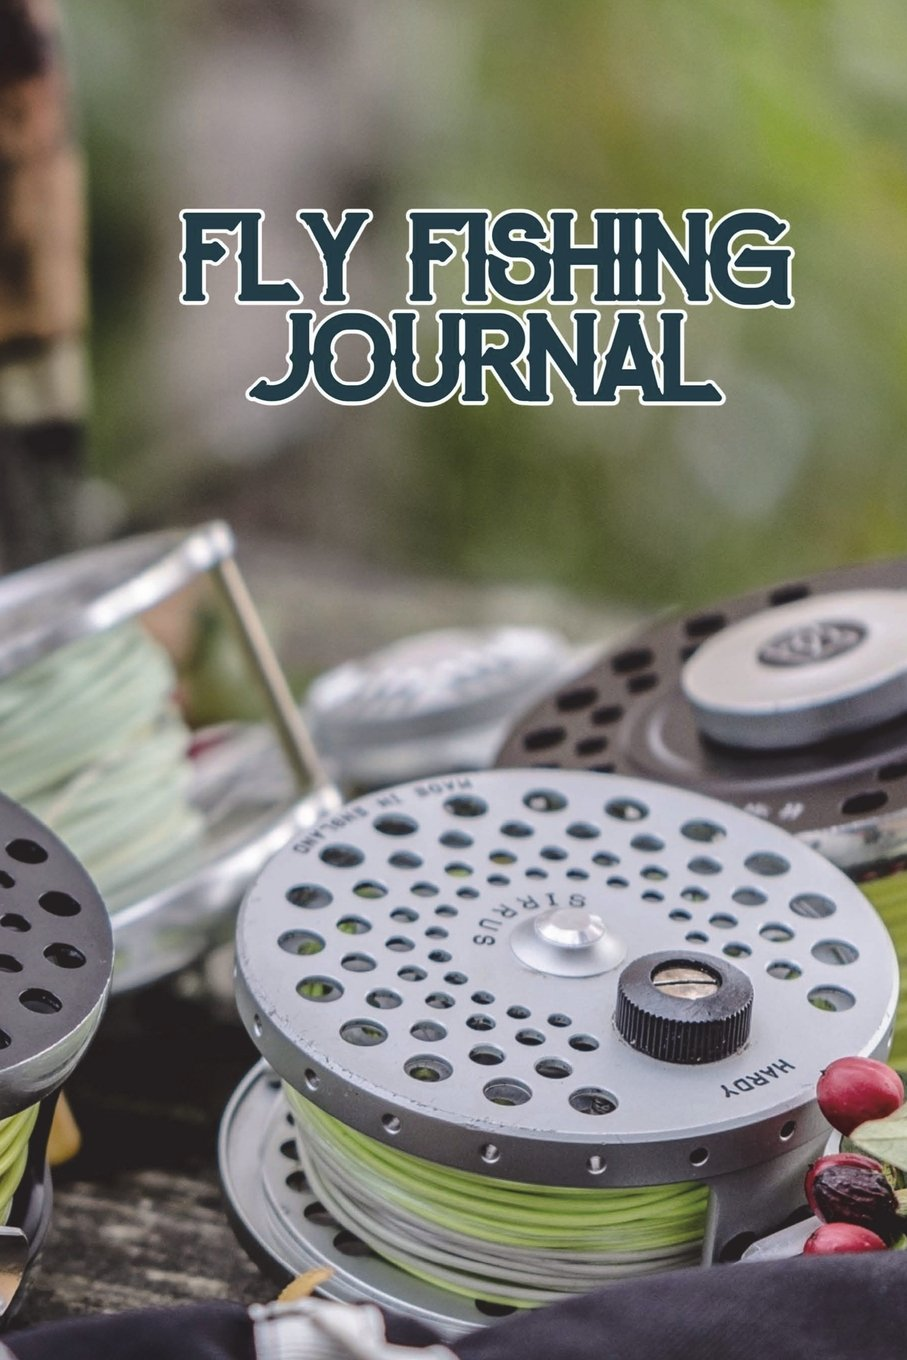 Fly Fishing Journal: Fly Fishing Log Book Fishing Notebook 6 X 9 Journal With 50 Pages (25 Trip Entries) Fly Fishing Notebook Fly Fishing Book ... Gift For Men Volume 1 (Fly Fishing Diary) pdf